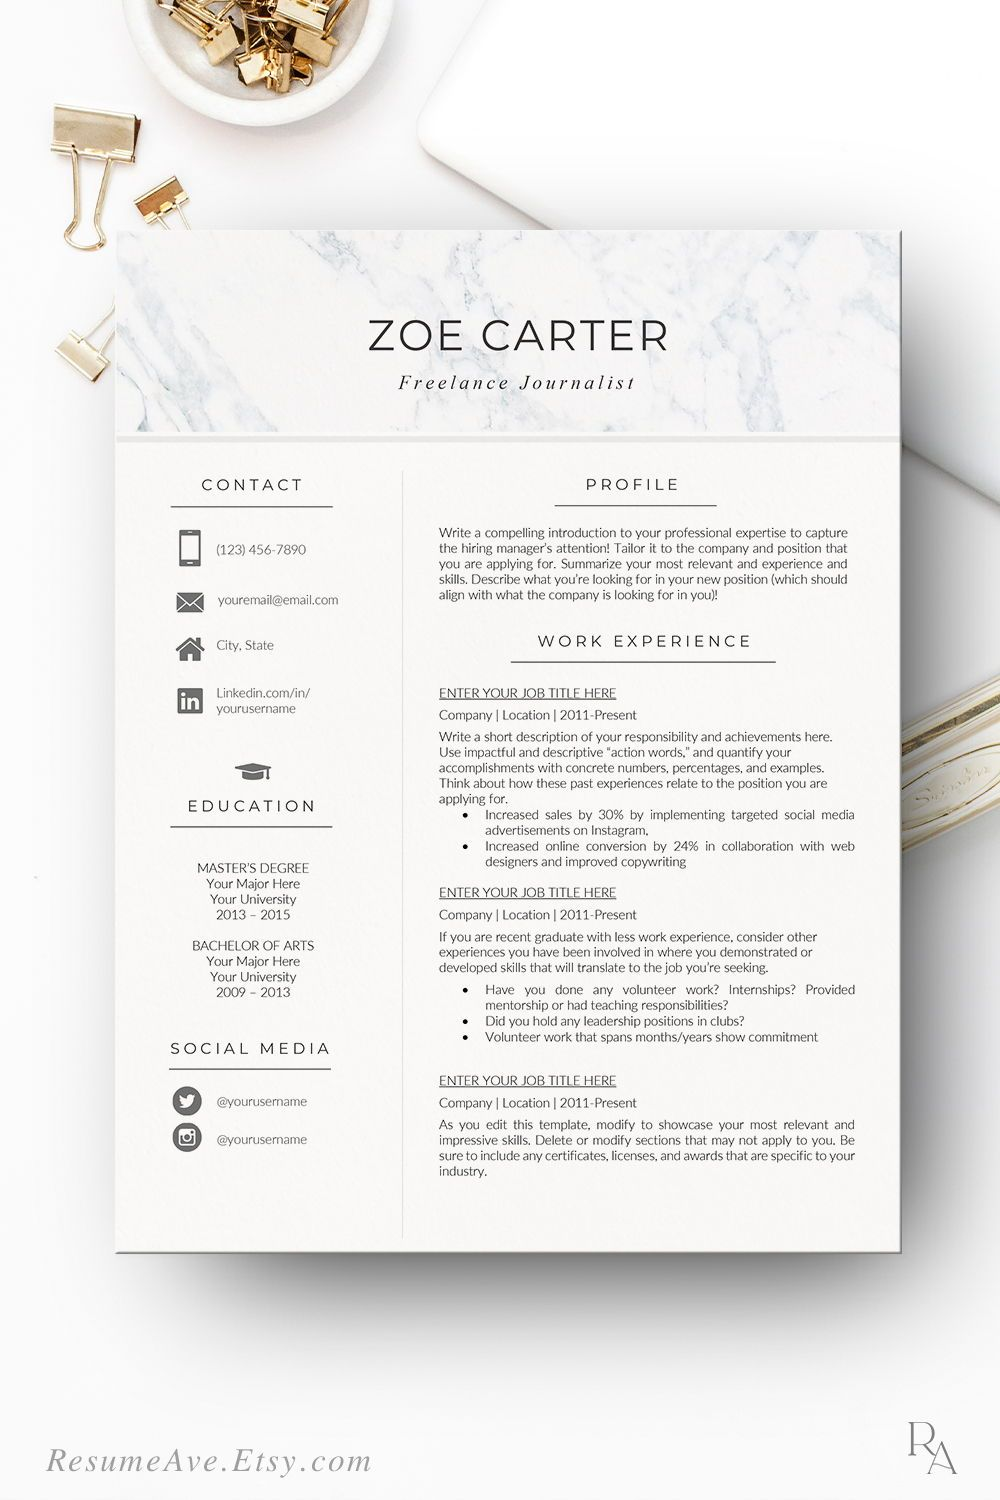 nurse resume template with marble header modern and creative etsy in nursing executive Resume The 24 Step Modern Resume